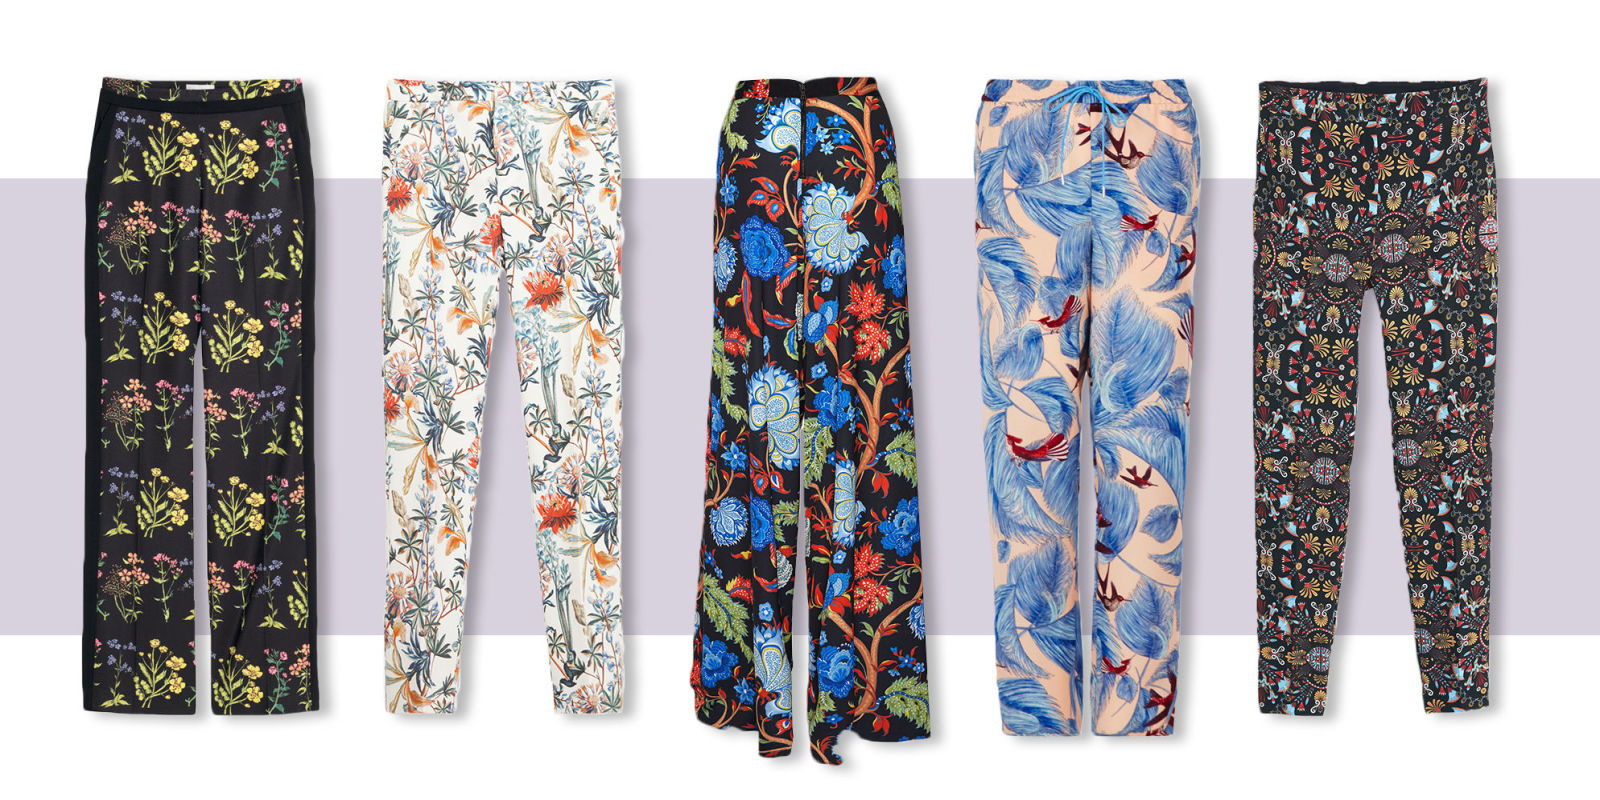 10 Best Printed Pants for Women 2018